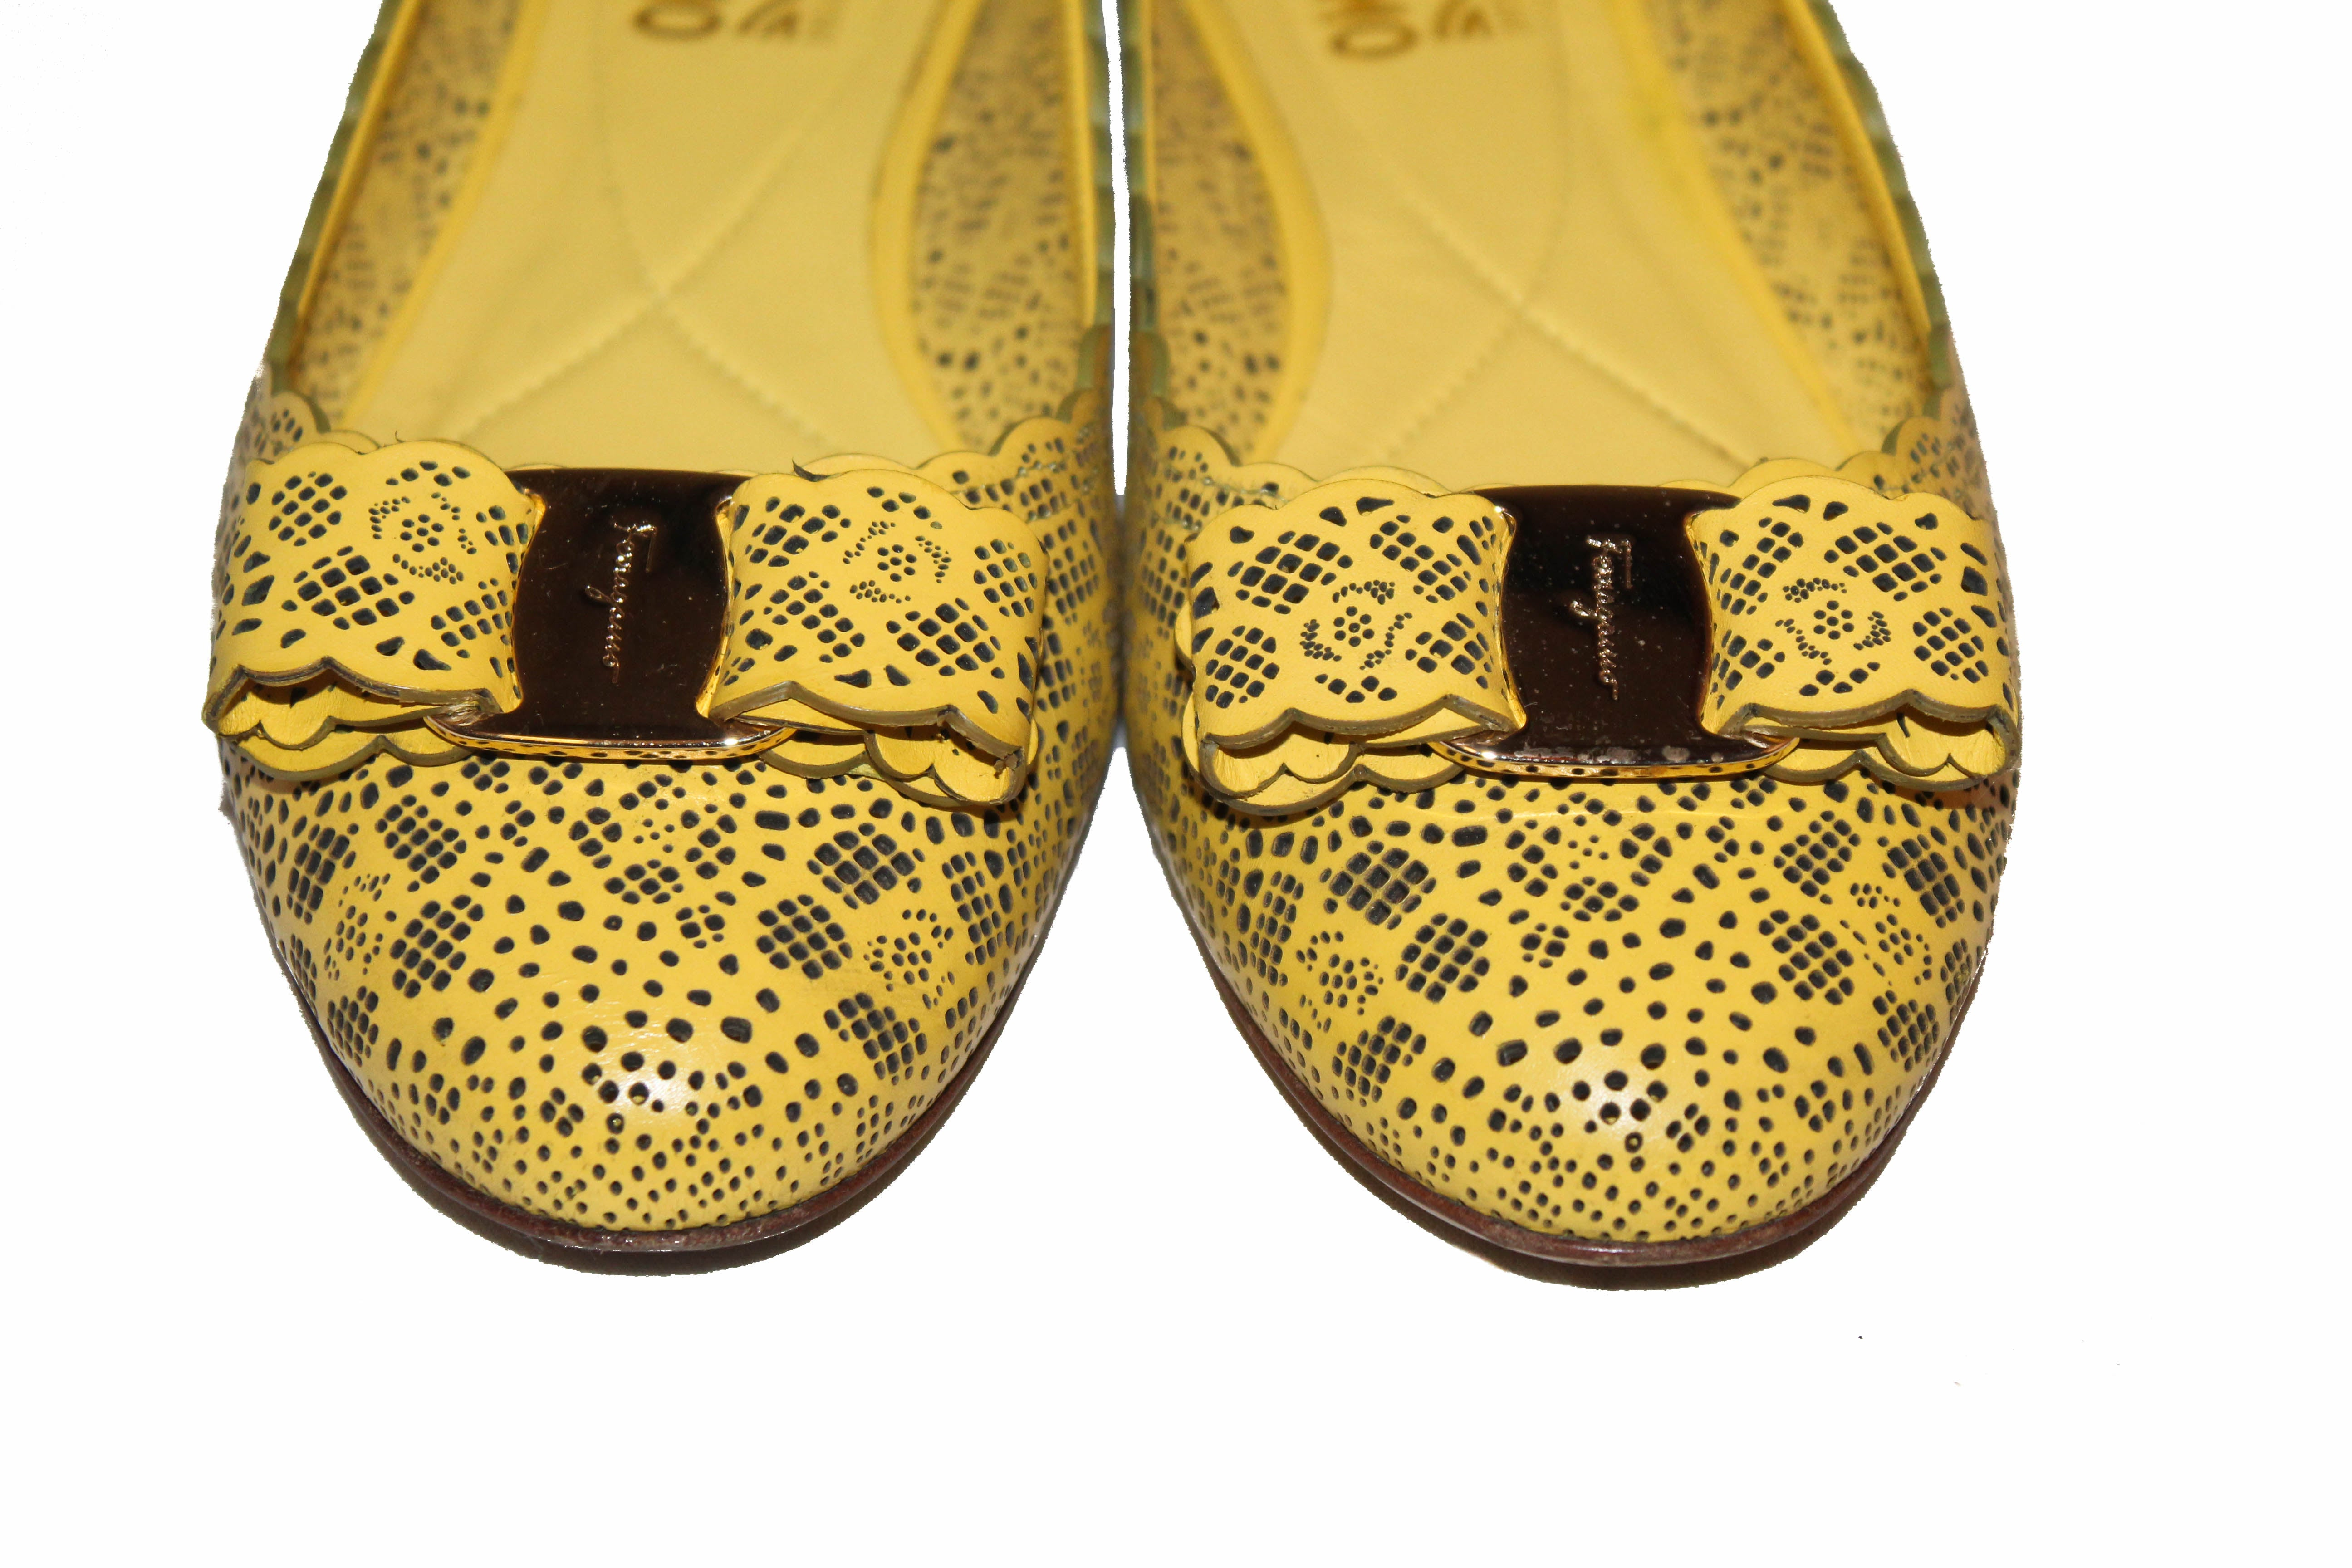 Authentic Salvatore Ferragamo Yellow Varina Laser Cut Calfskin Leather Flats Size 7C